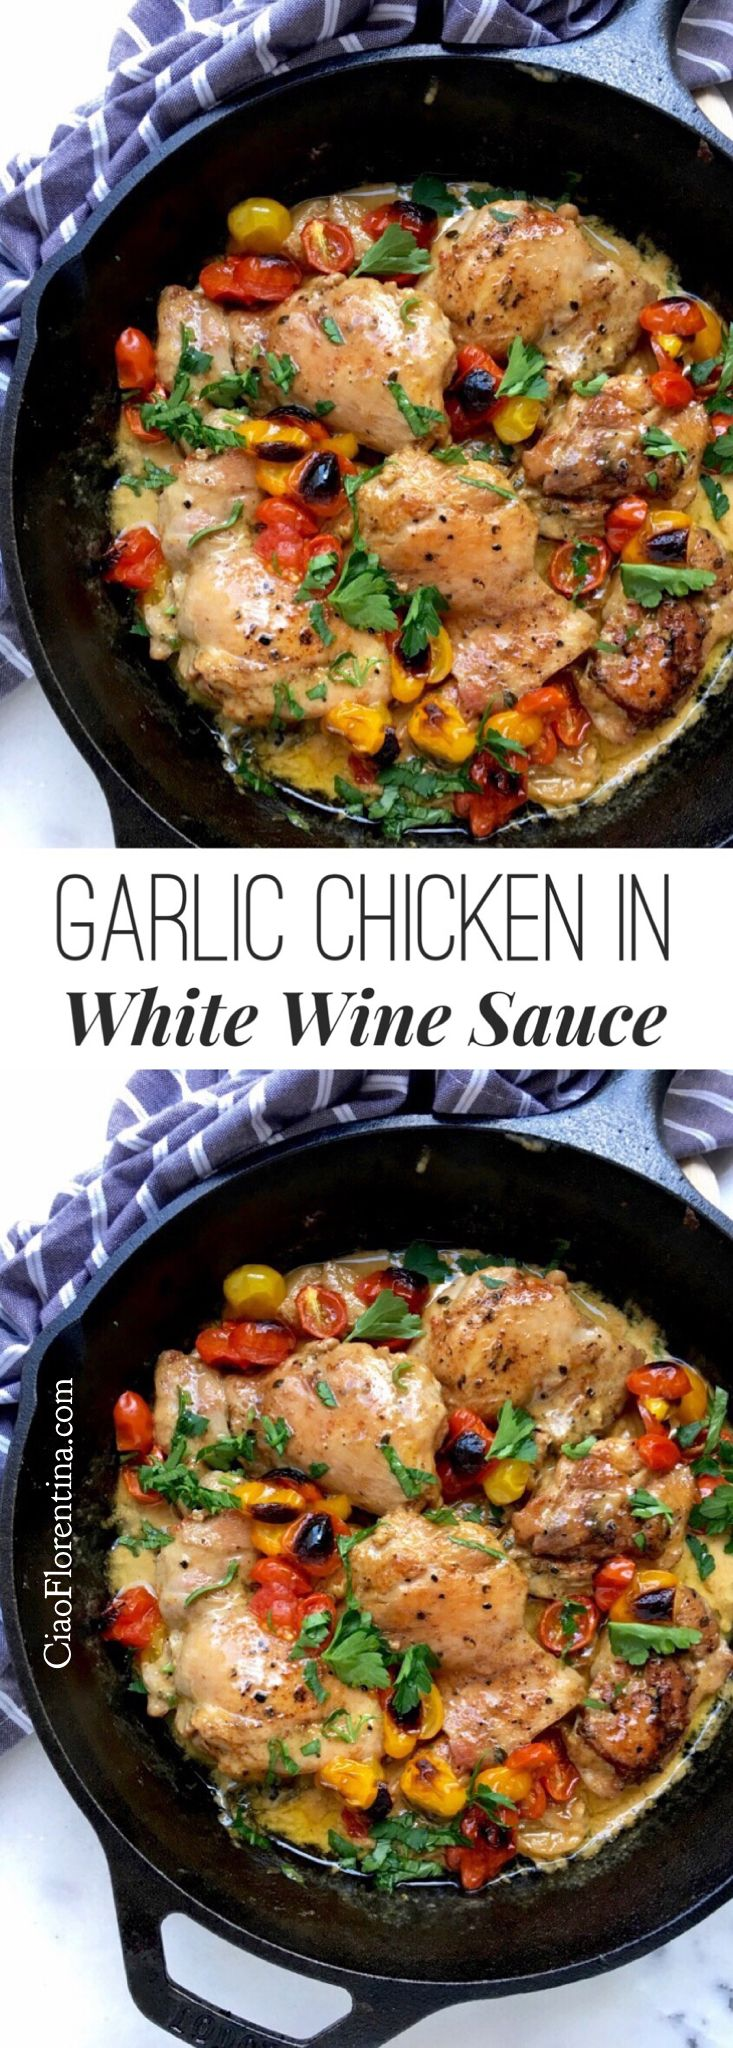 Garlic Chicken in White Wine Sauce Italian Style, with Thyme and Tomatoes  ❤️| CiaoFlorentina.com @CiaoFlorentina